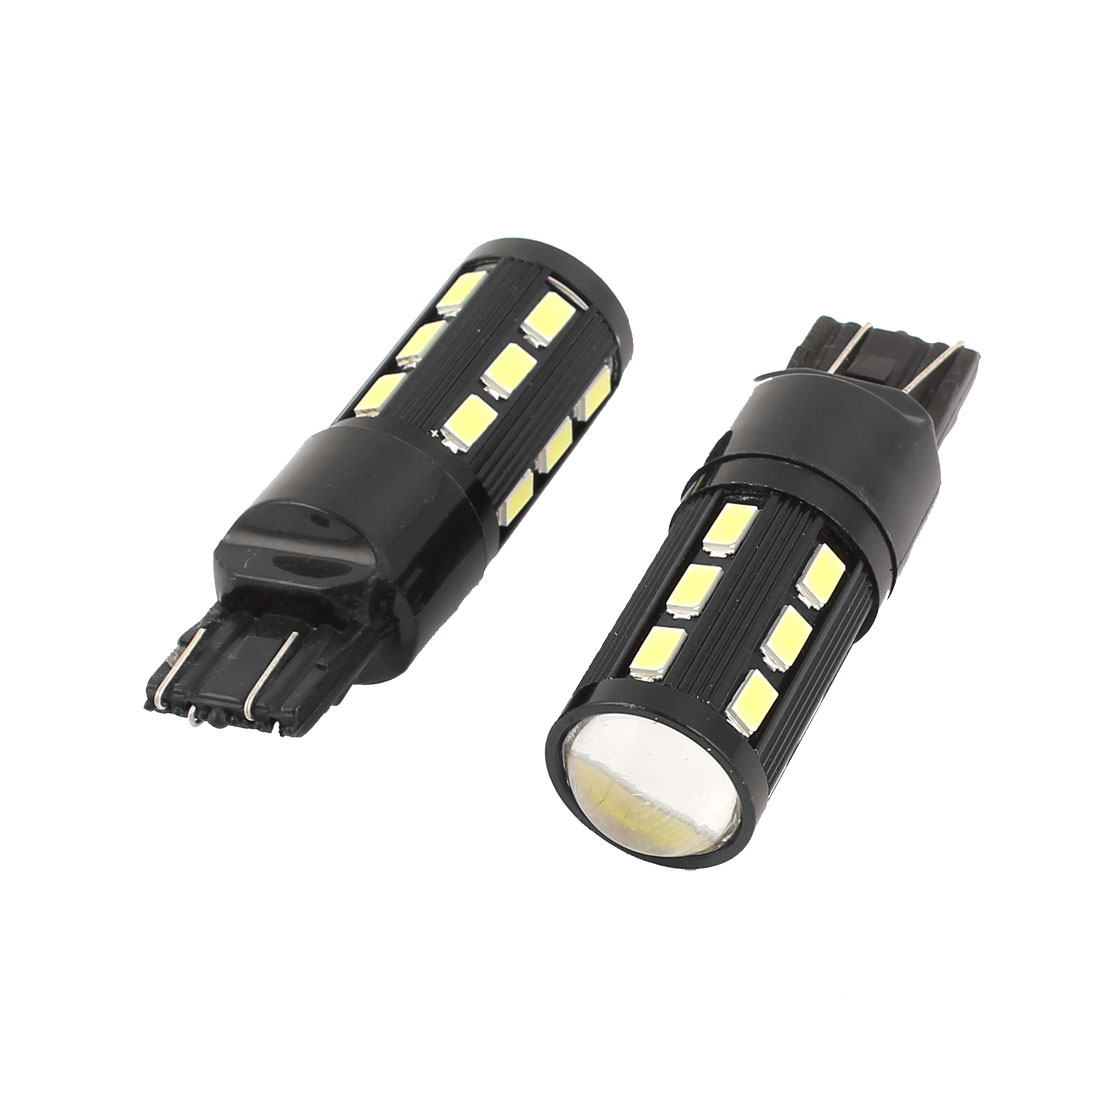 2 Pcs 7443 19 SMD 5630 SMD LED White Car Stoplight Backup Bulb White W21W